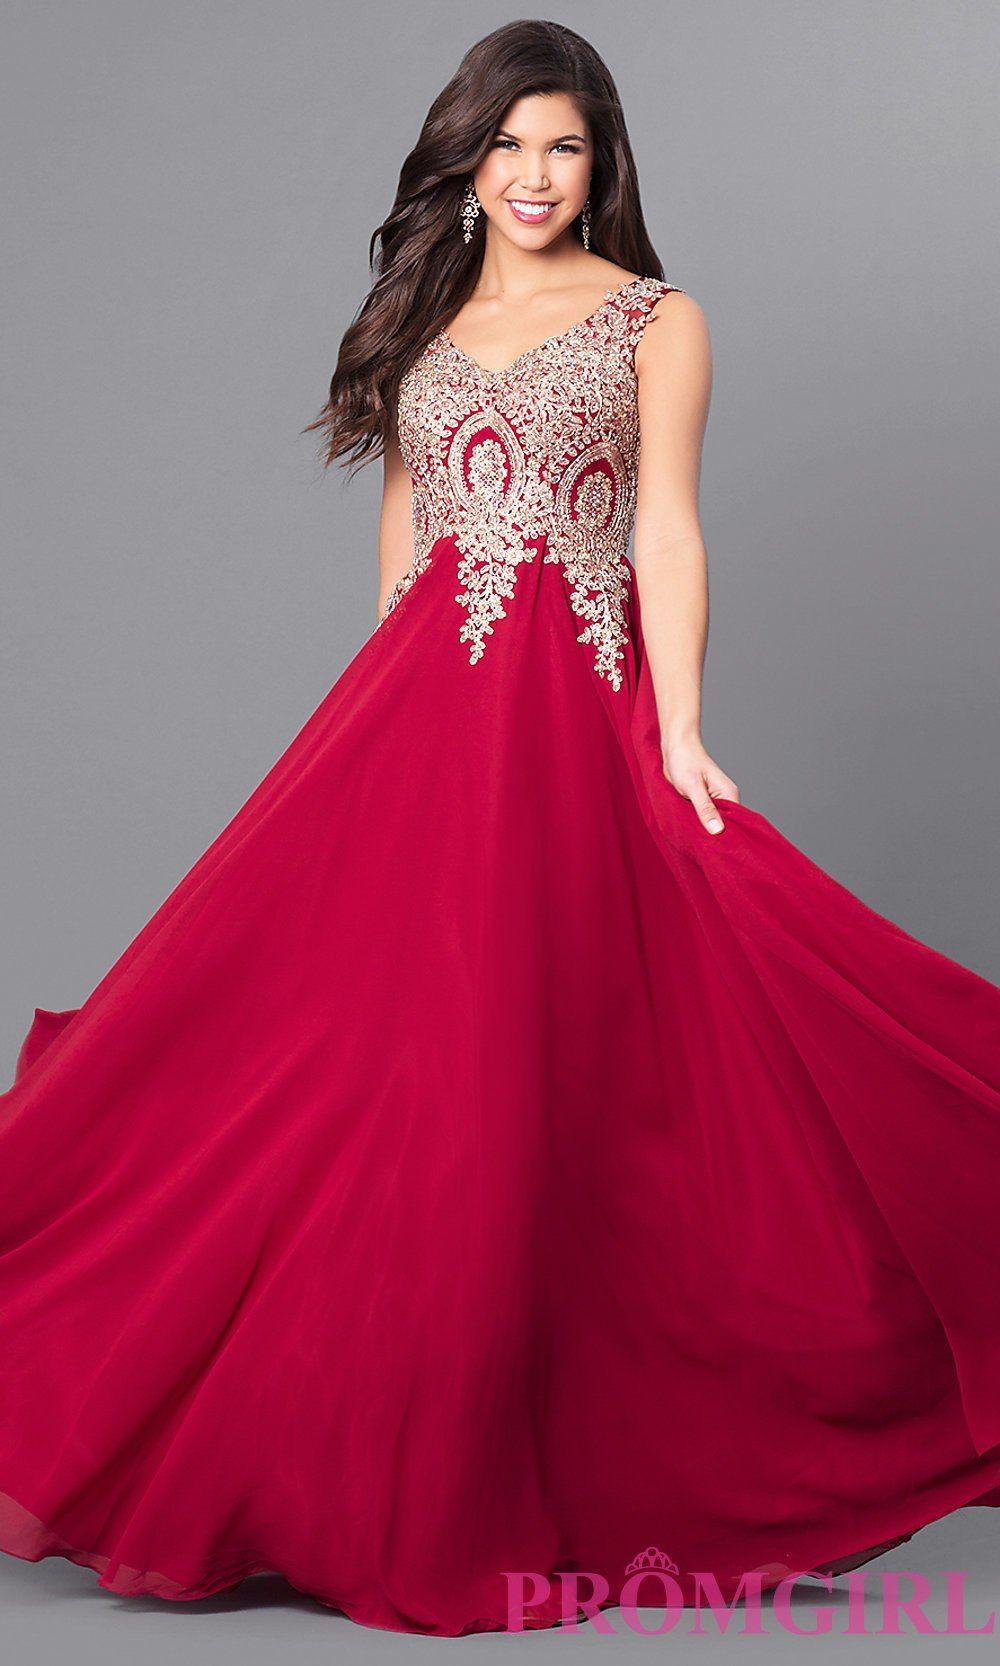 89536476dddd Long V-Neck Prom Dress with Beaded Lace Applique | Dreamboard | Prom ...